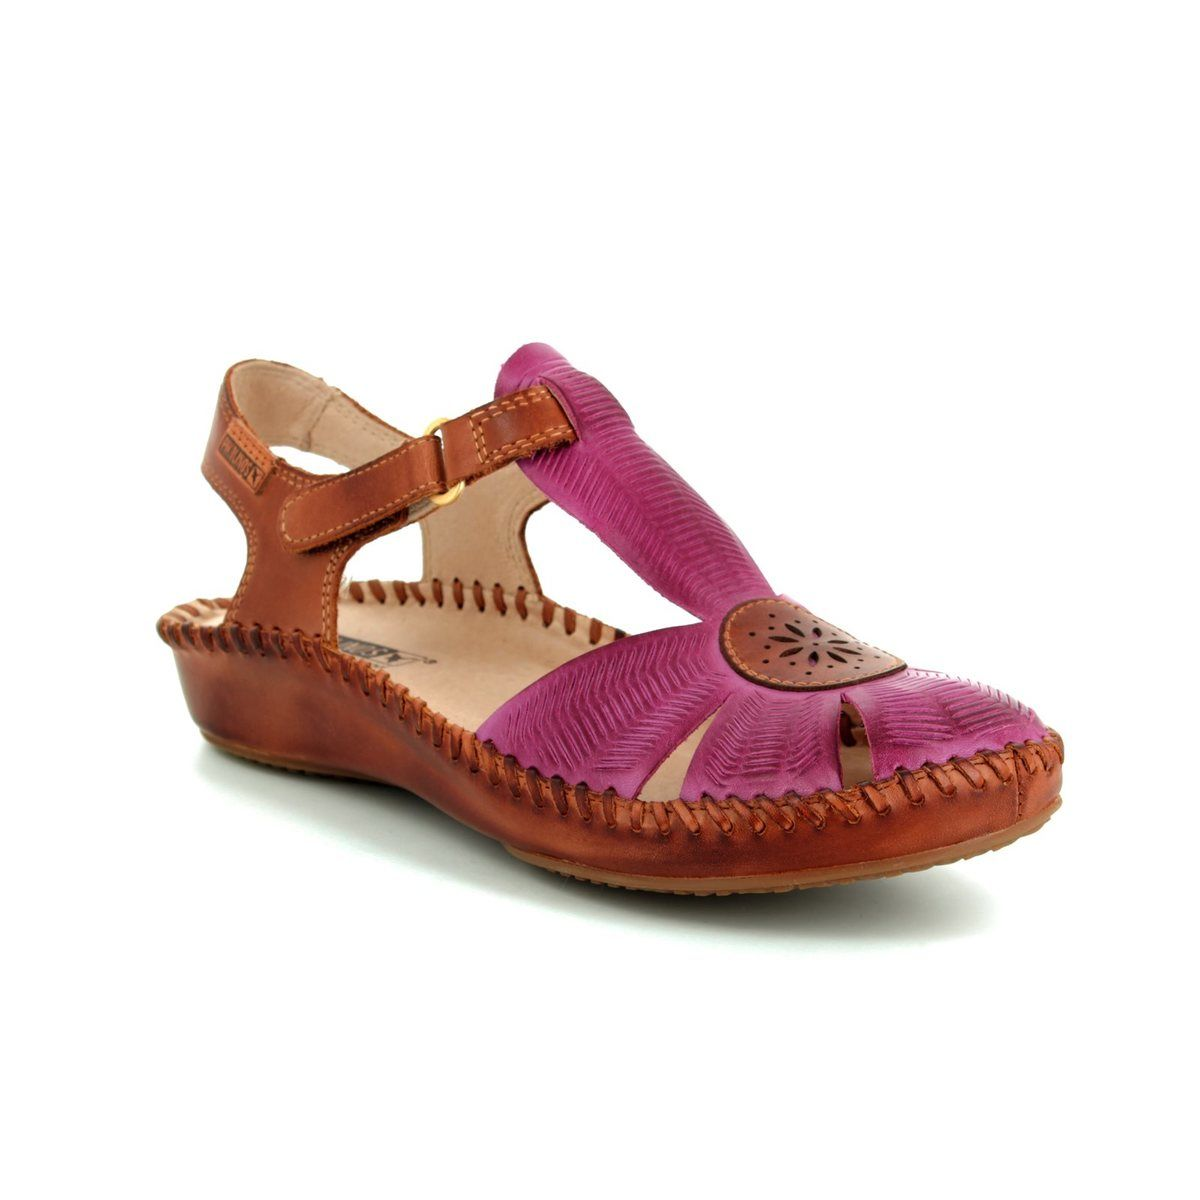 36a993e8b93f3 Pikolinos Closed Toe Sandals - Fuschia - 6550575 95 VALLARIA